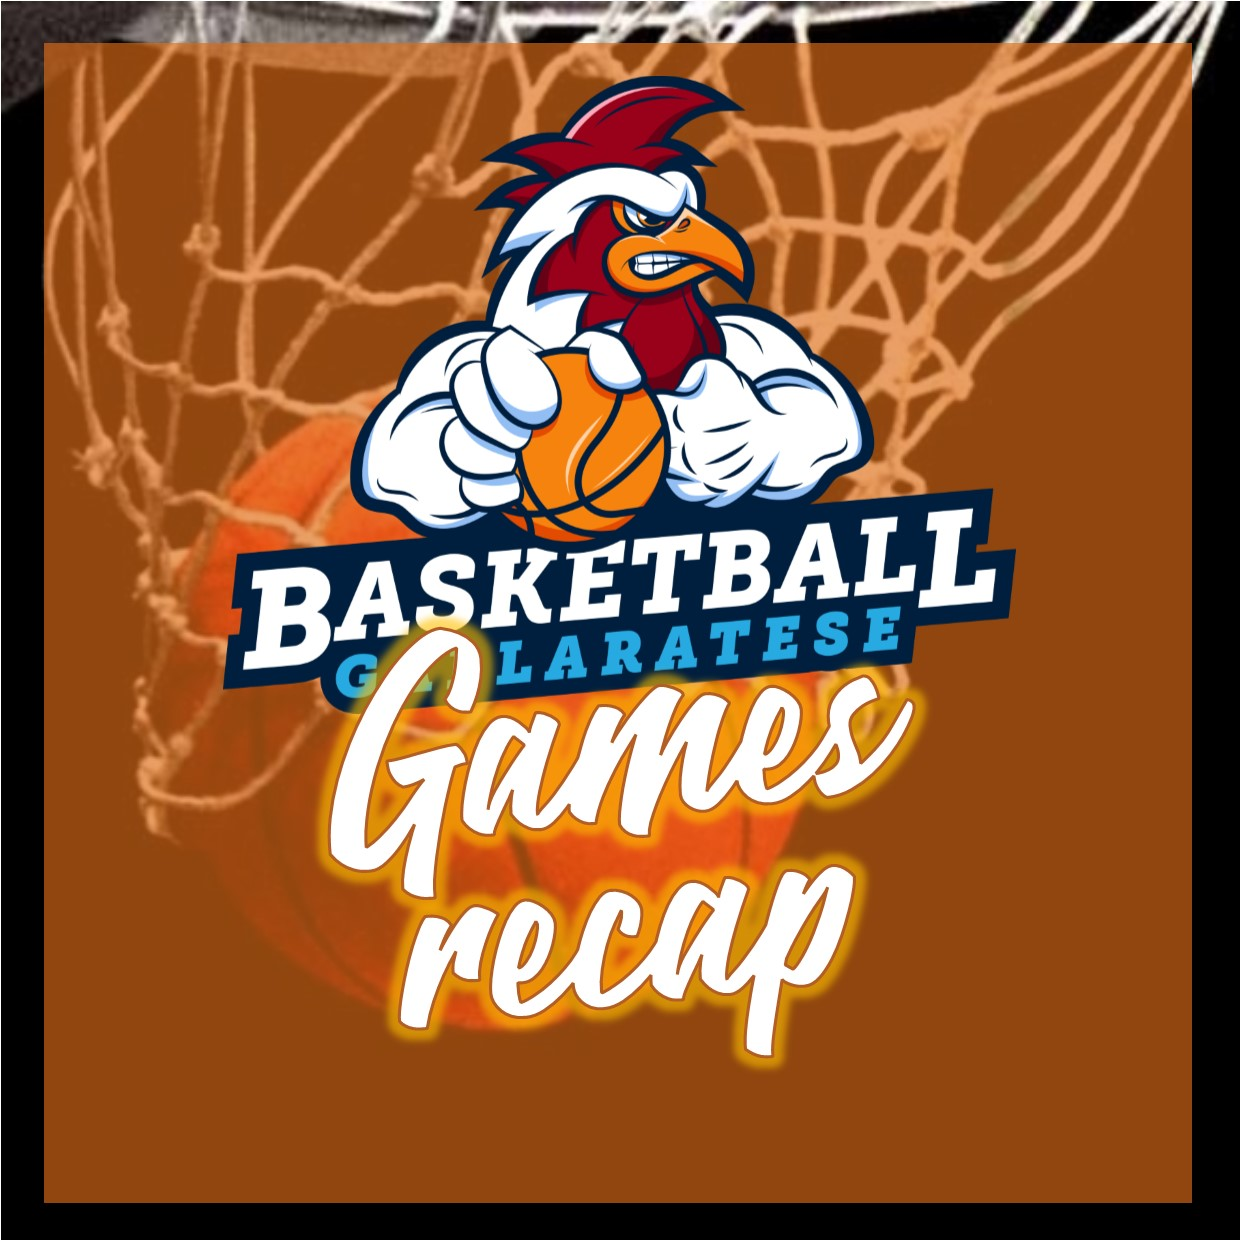 https://www.bbgallaratese.it/wp-content/uploads/2019/11/Games-Recap_orange.jpg